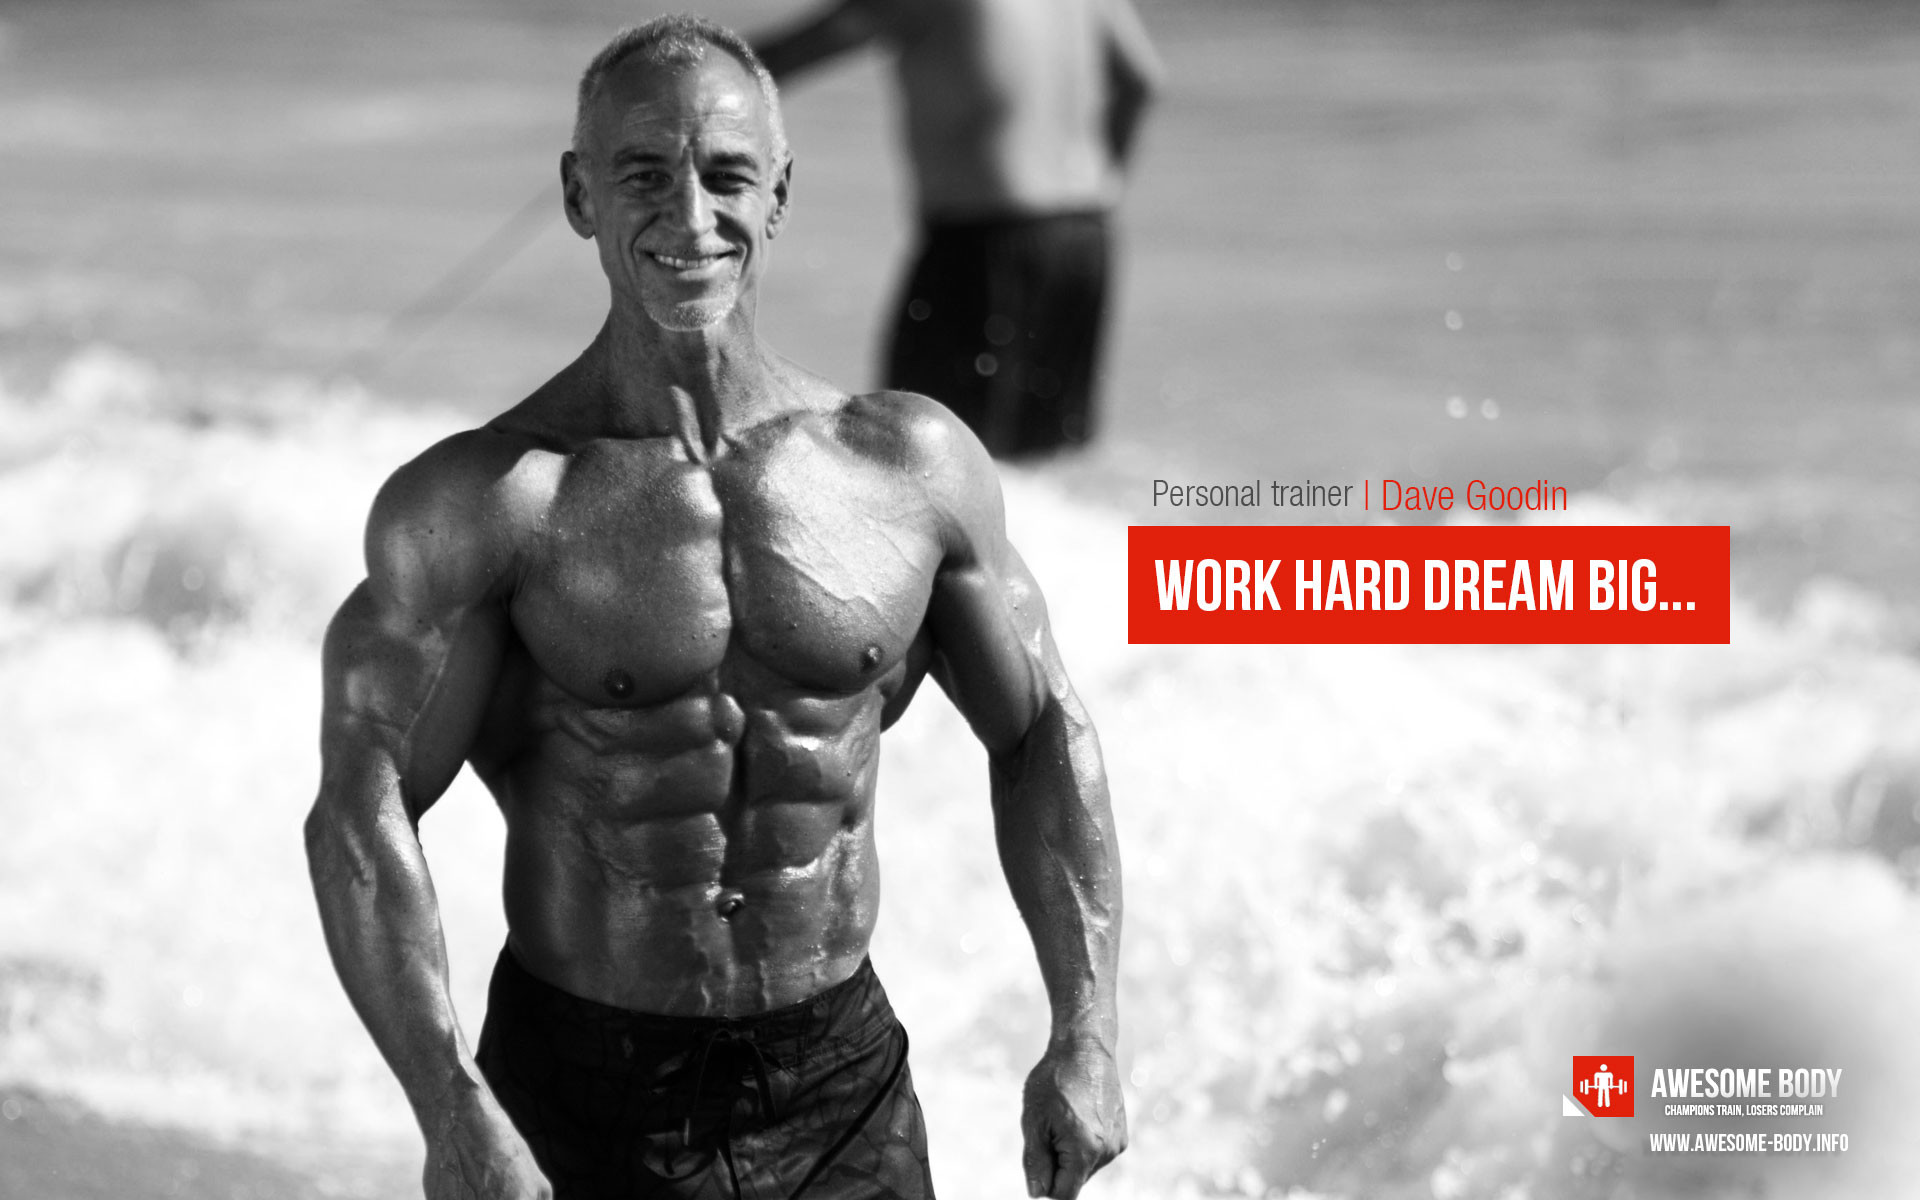 1920x1200 Dave Goodin | HD wallpapers. Personal trainer Dave Goodin quote: Work hard  dream big.